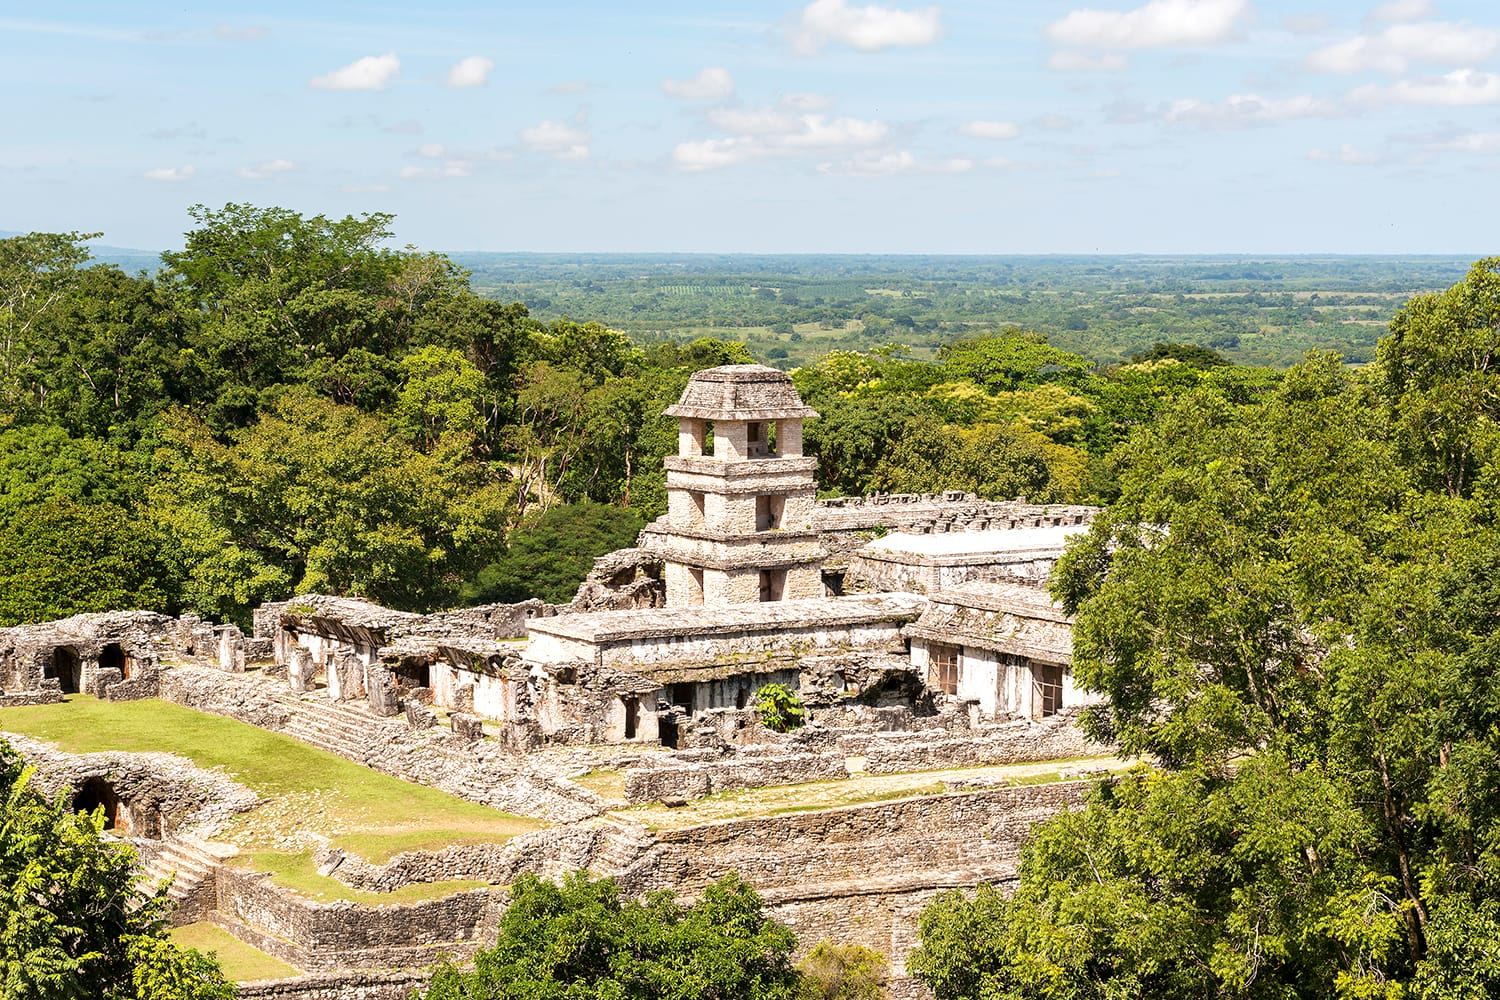 High angle view of the ancient Mayan Palace at the heritage site in Palenque, Mexico